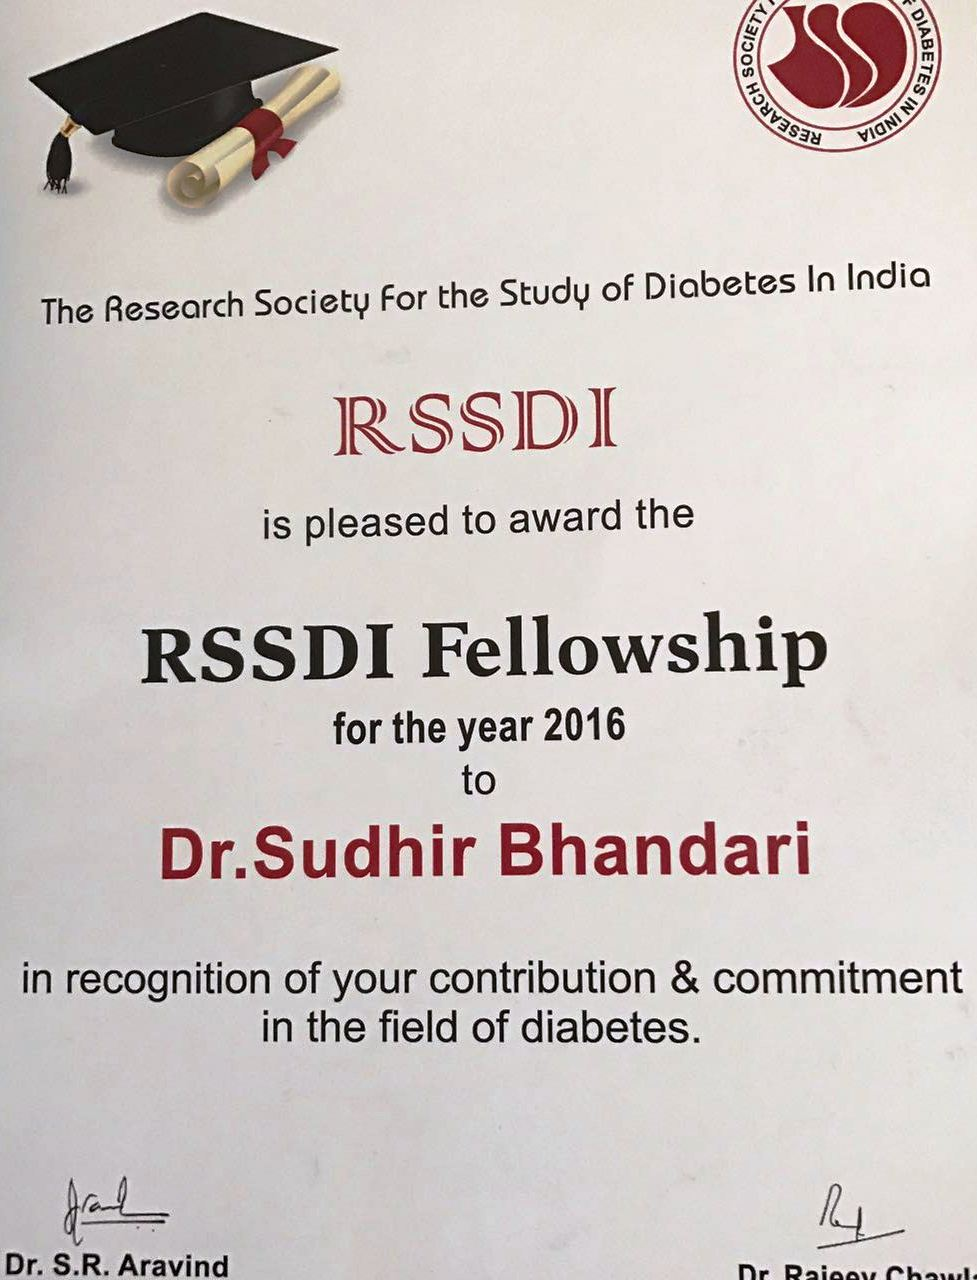 FRSSDI 2016 _Fellowship Award in Research Society for the Study of Diabetes in India, 18-11-2016